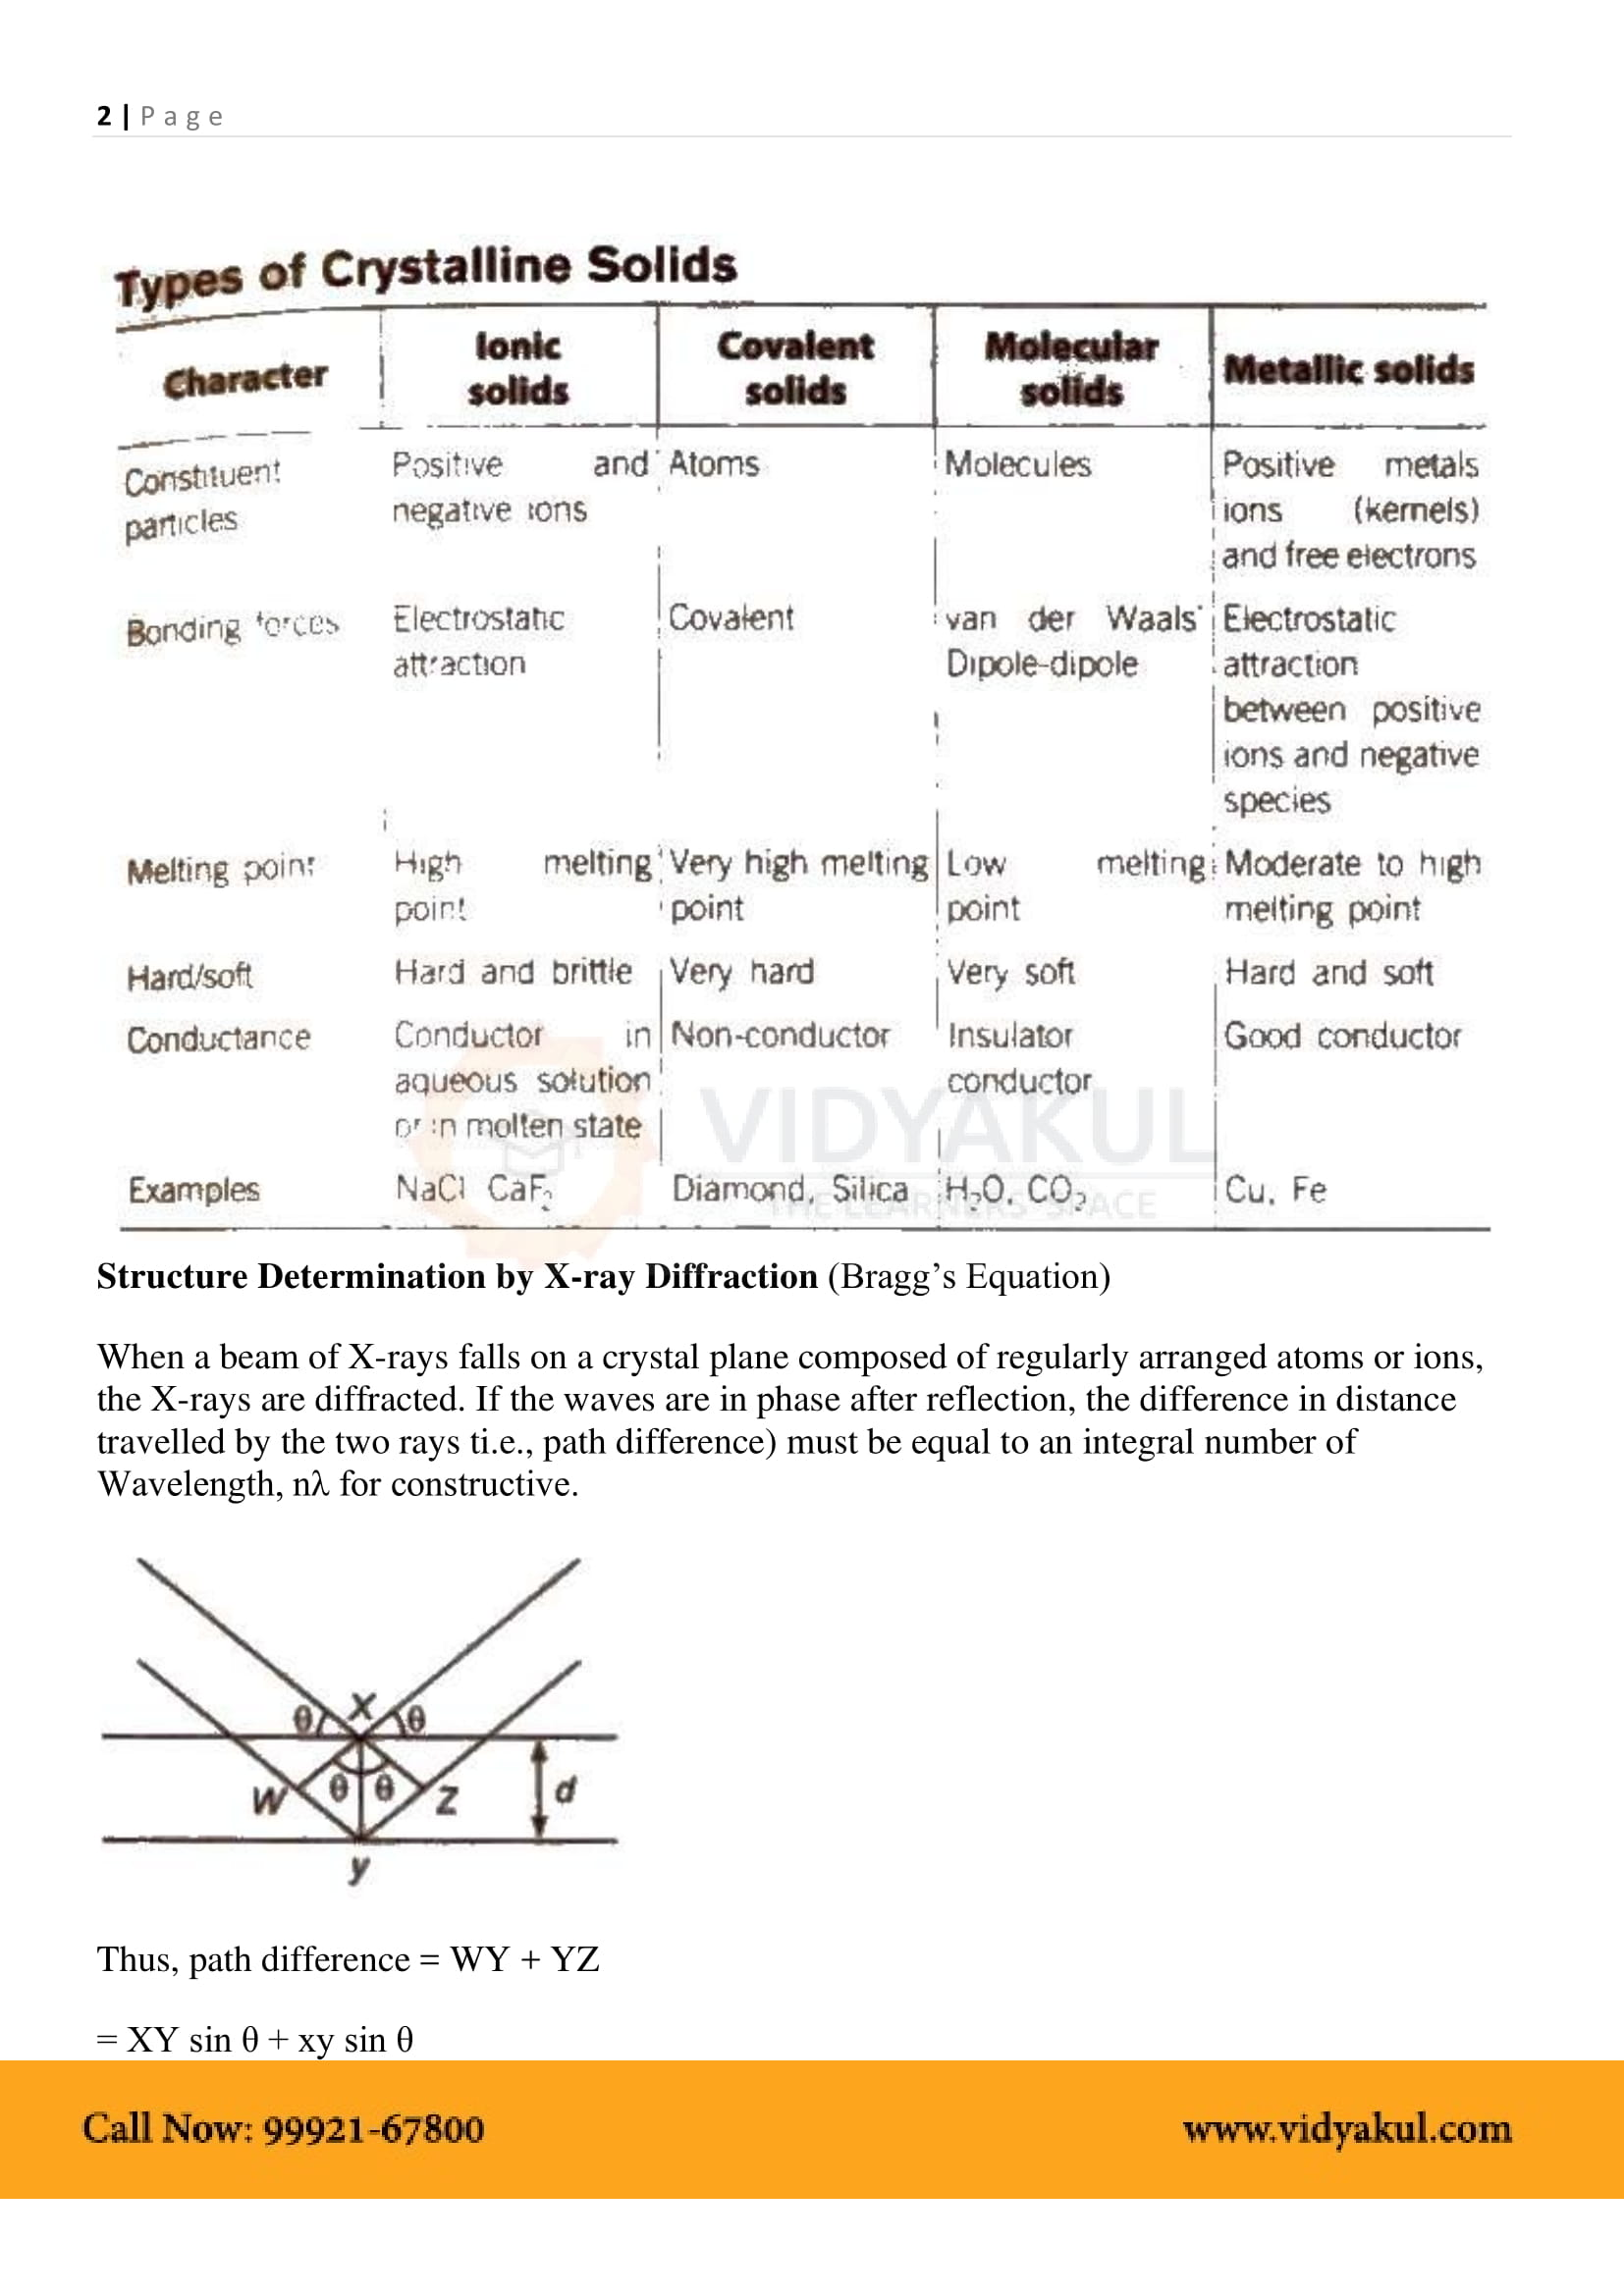 Solid State Class 12 Notes   Vidyakul